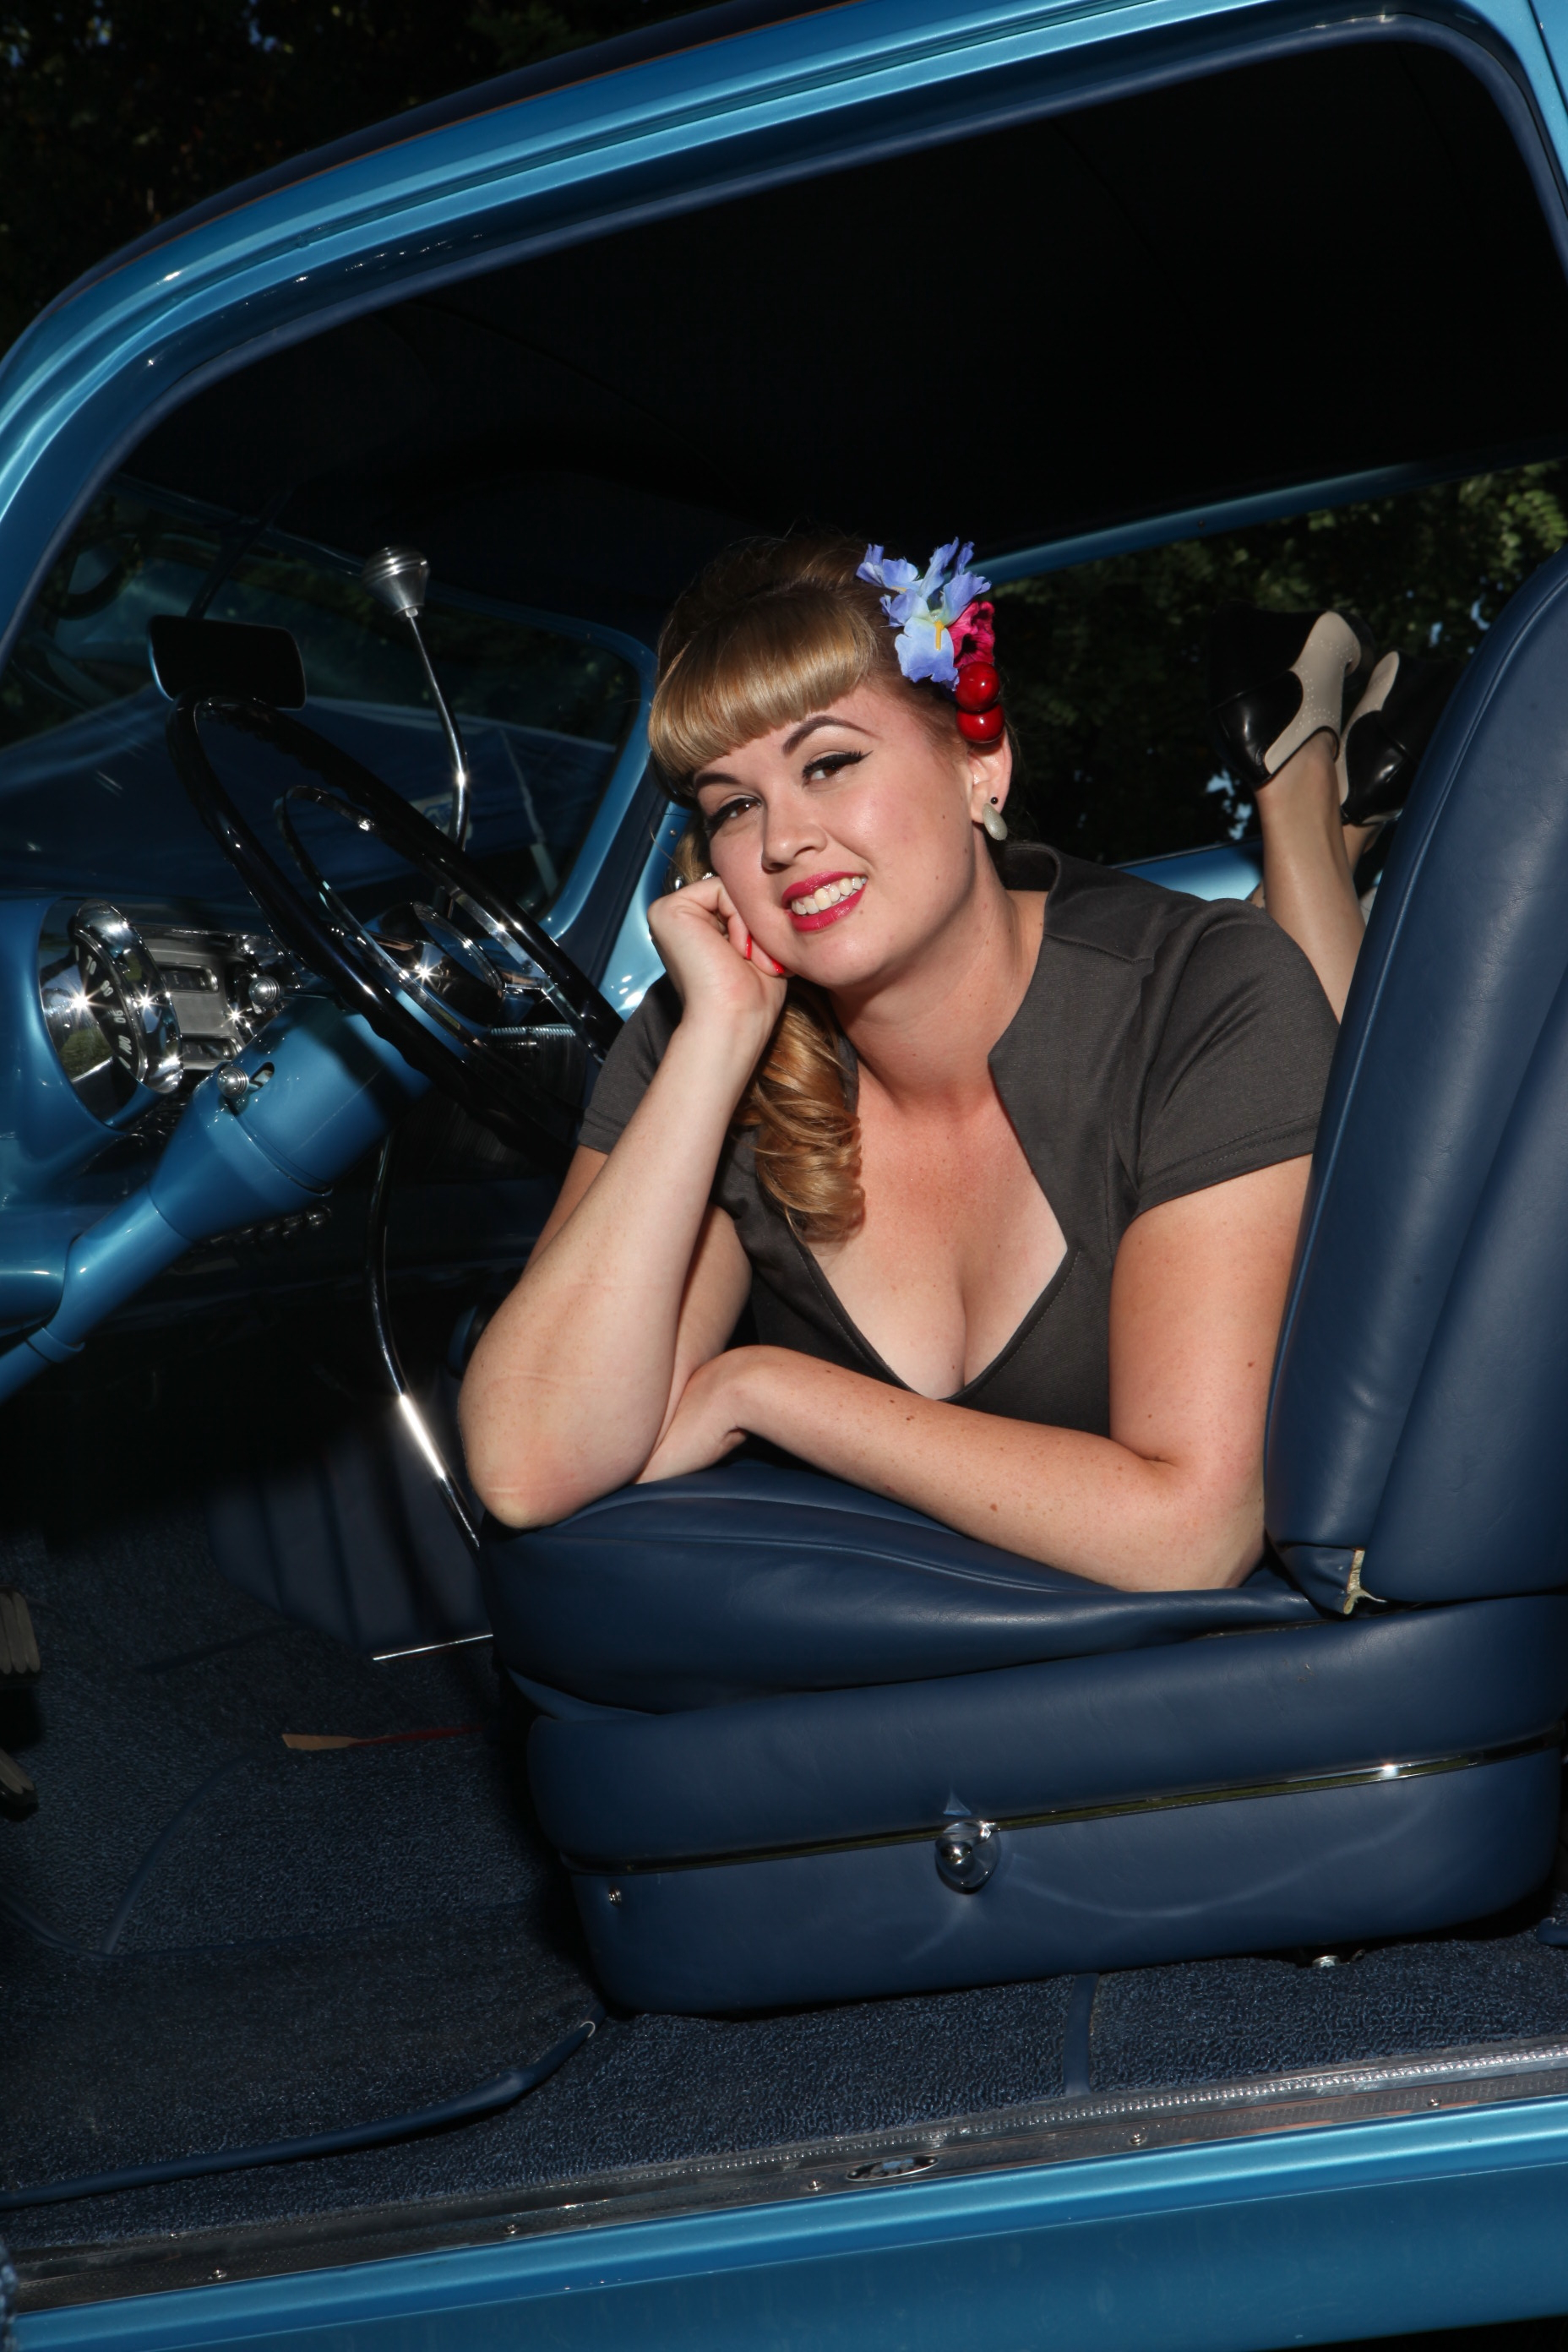 Pinup of the Week: Doris Dane